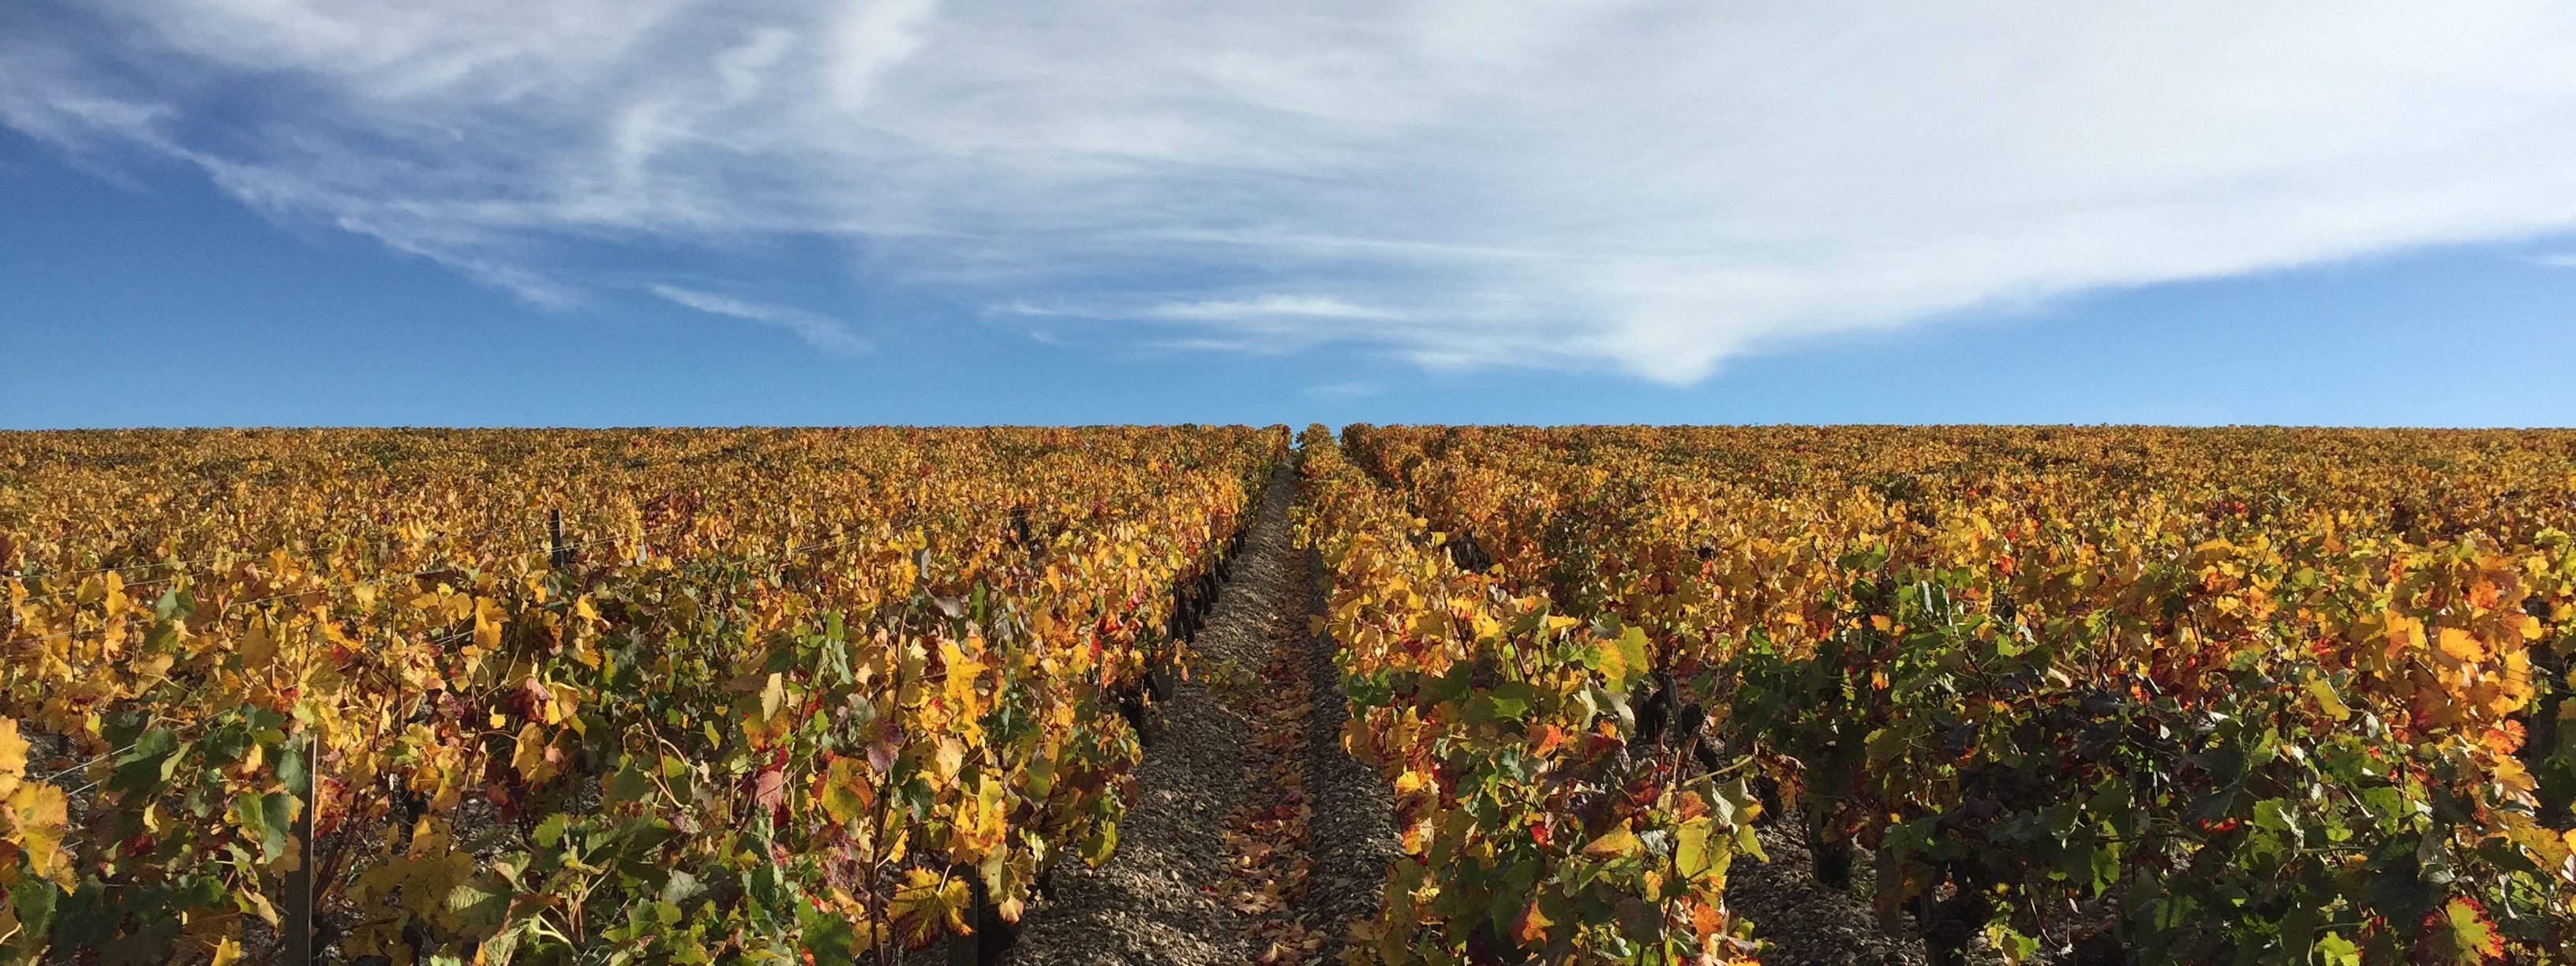 A comprehensive service for vineyard buyers